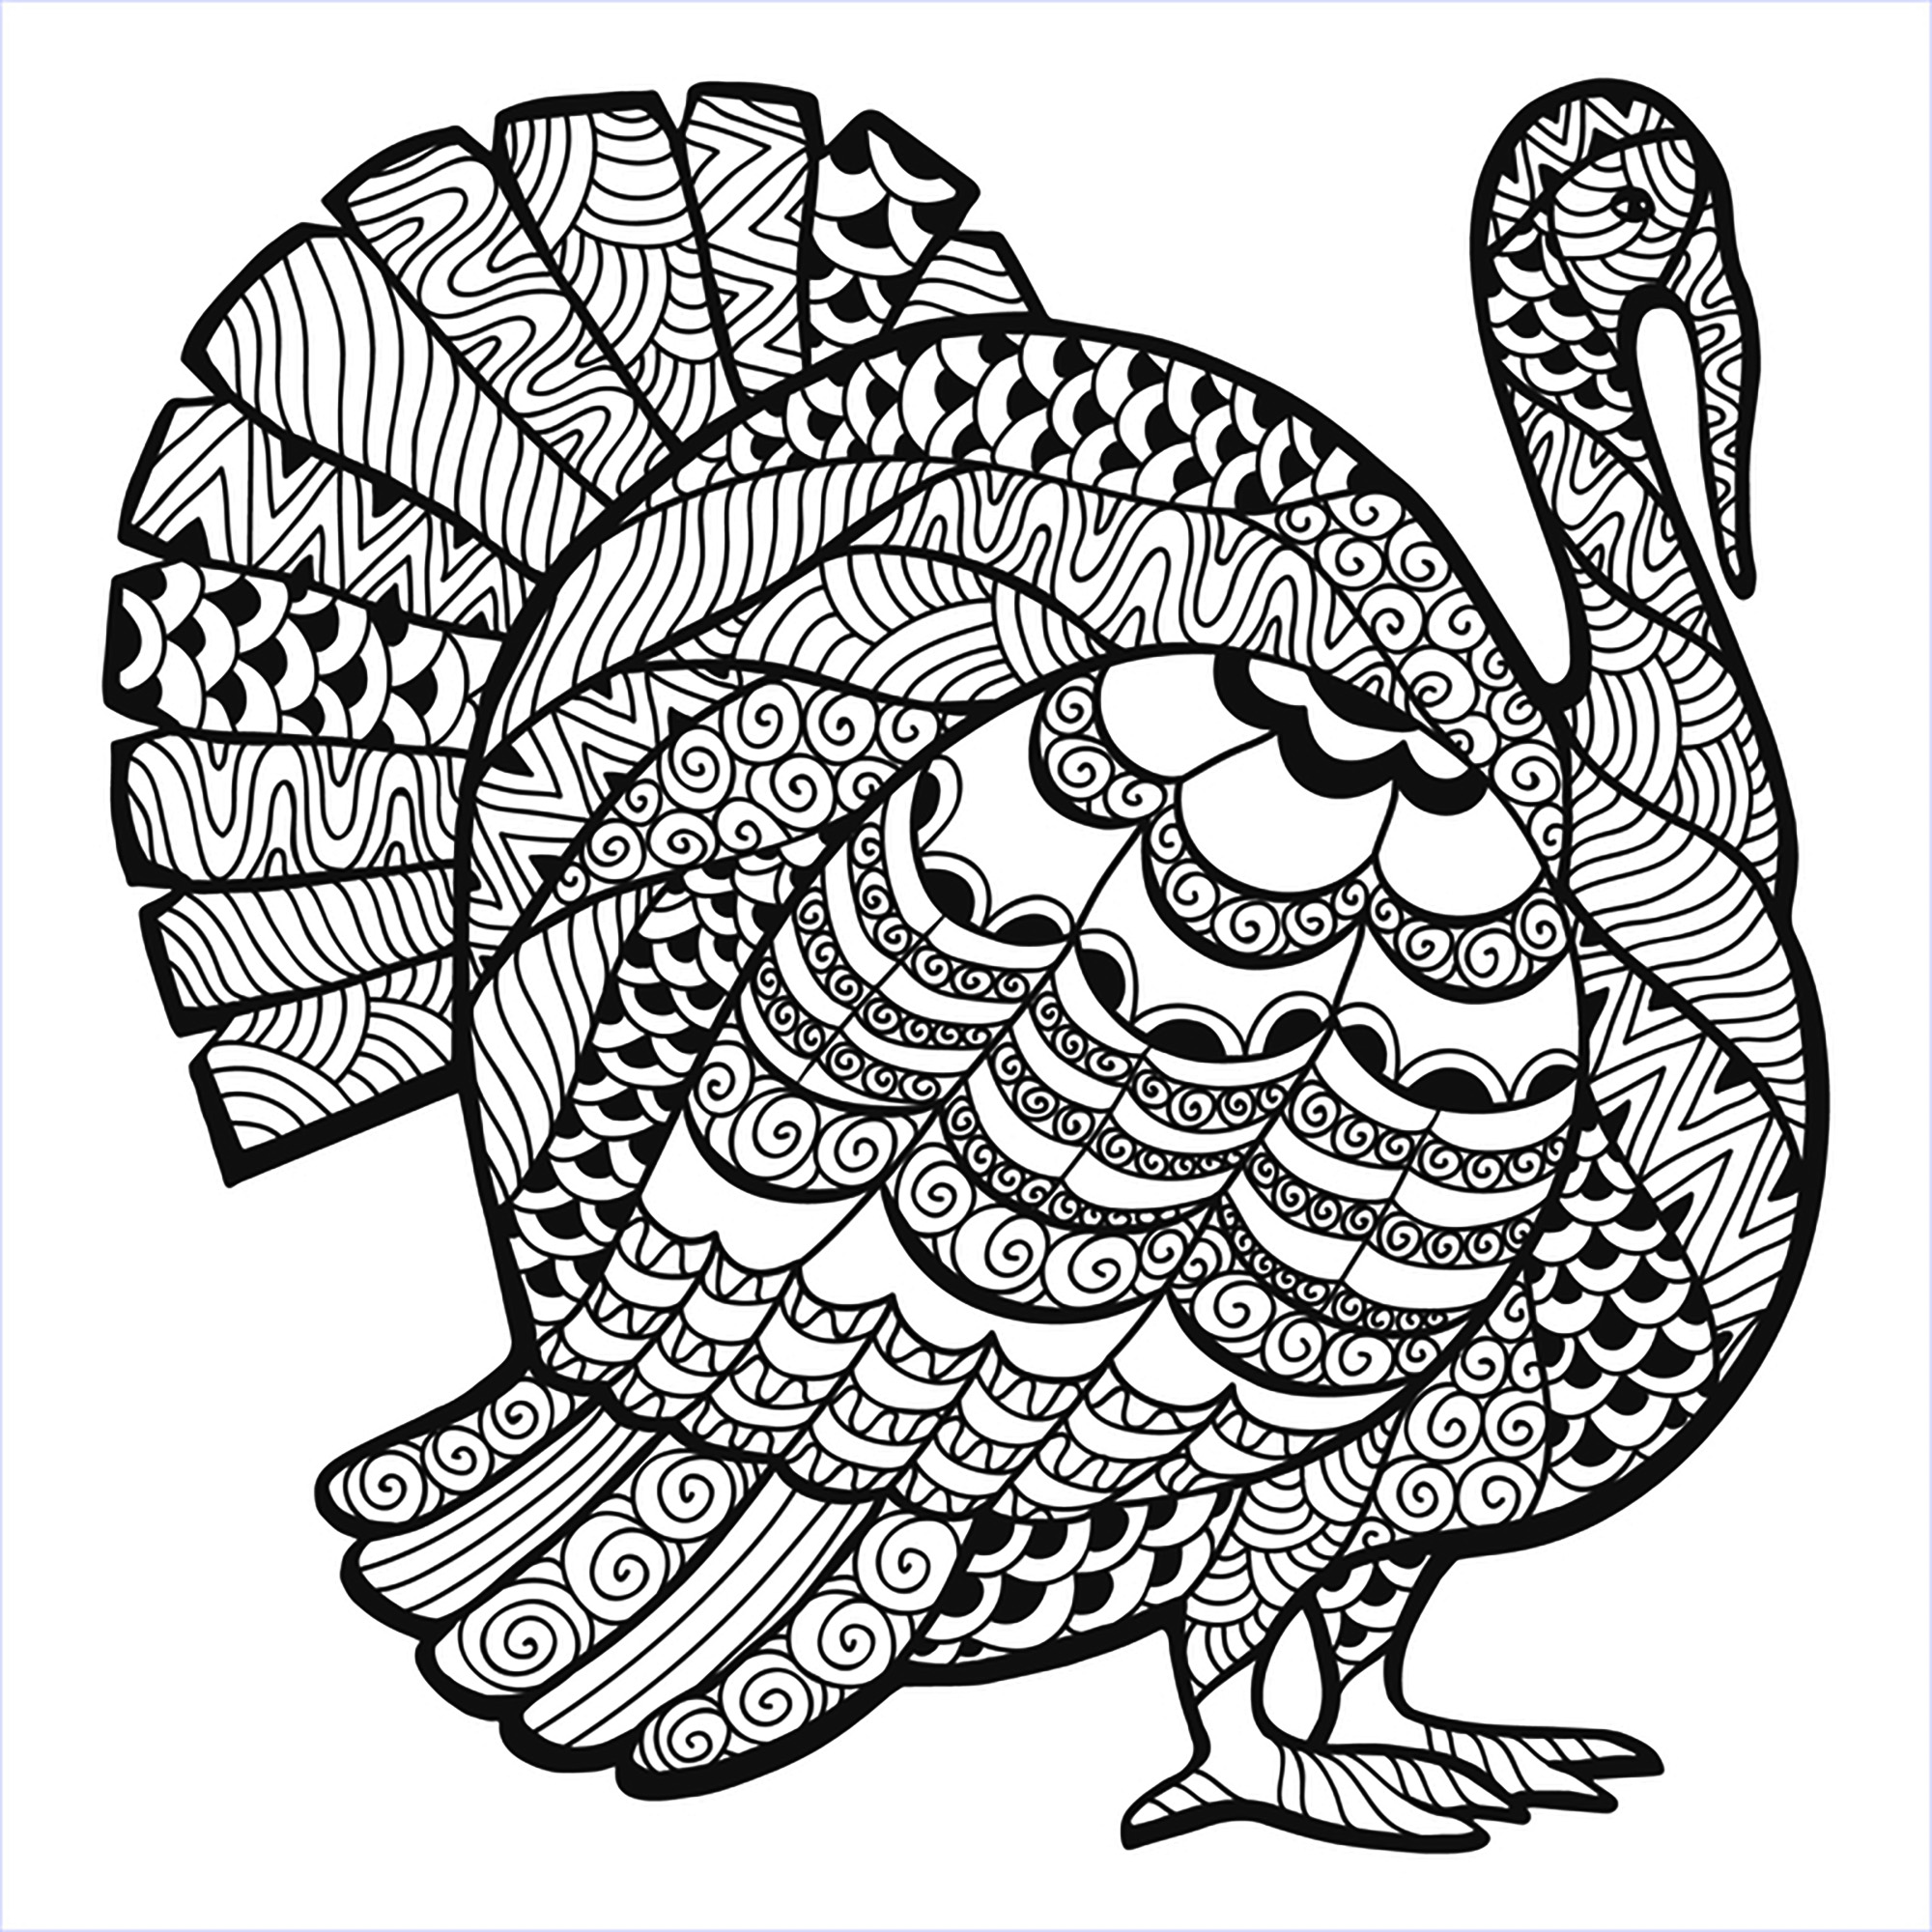 2000x2000 Thanksgiving Turkey Zentangle Coloring Page, From The Gallery